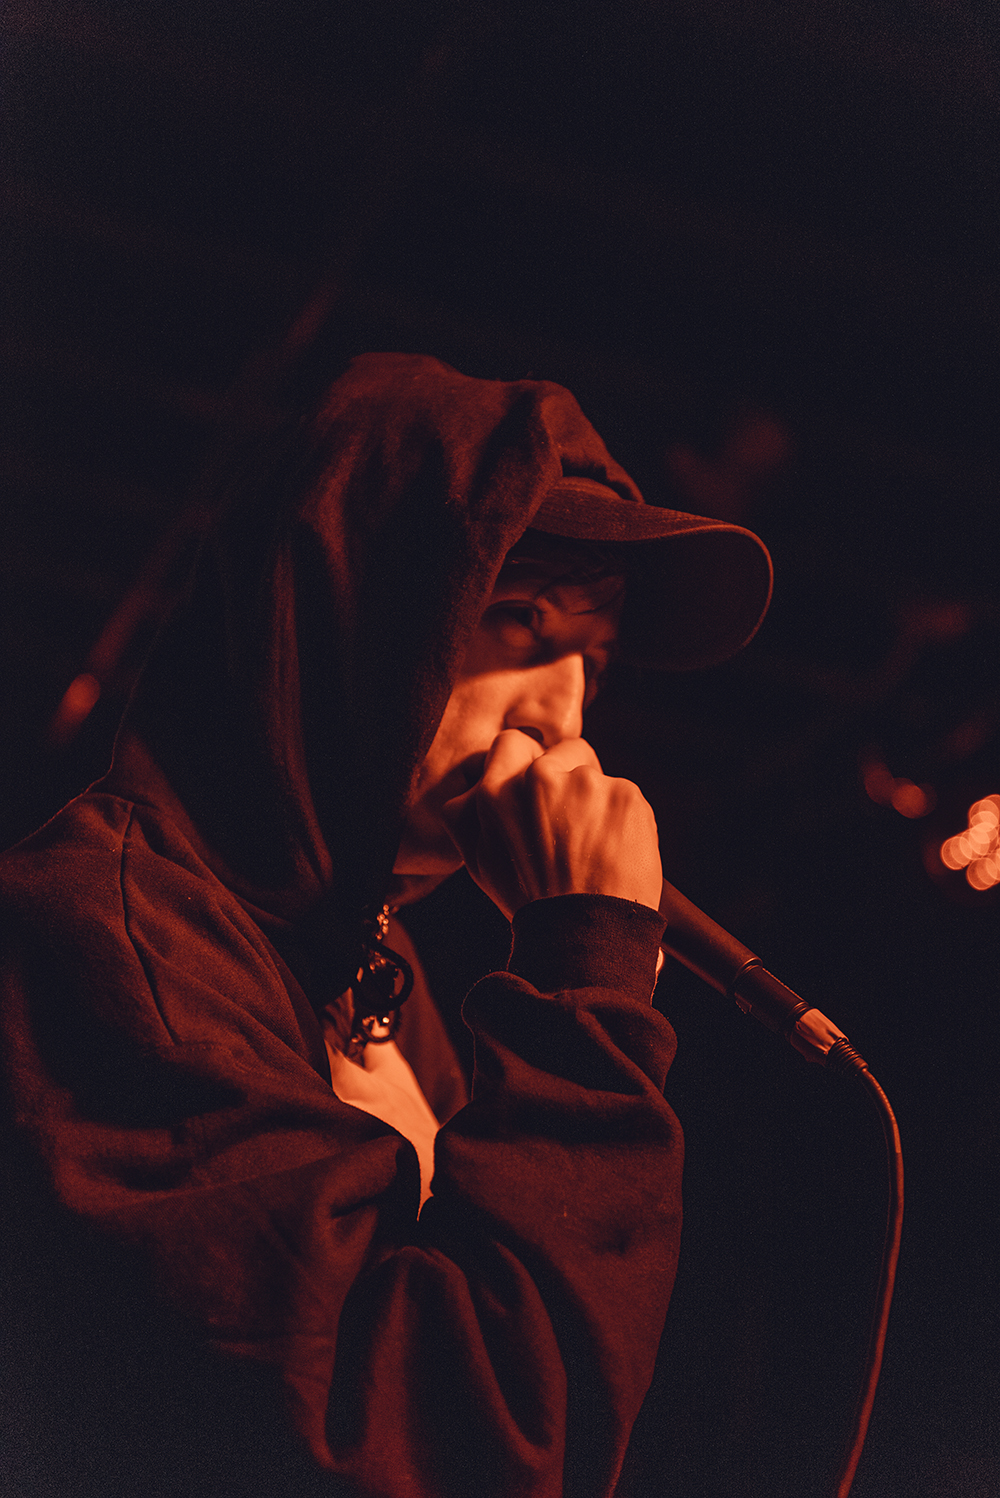 Wicca Phase Springs Eternal-4 copy.jpg